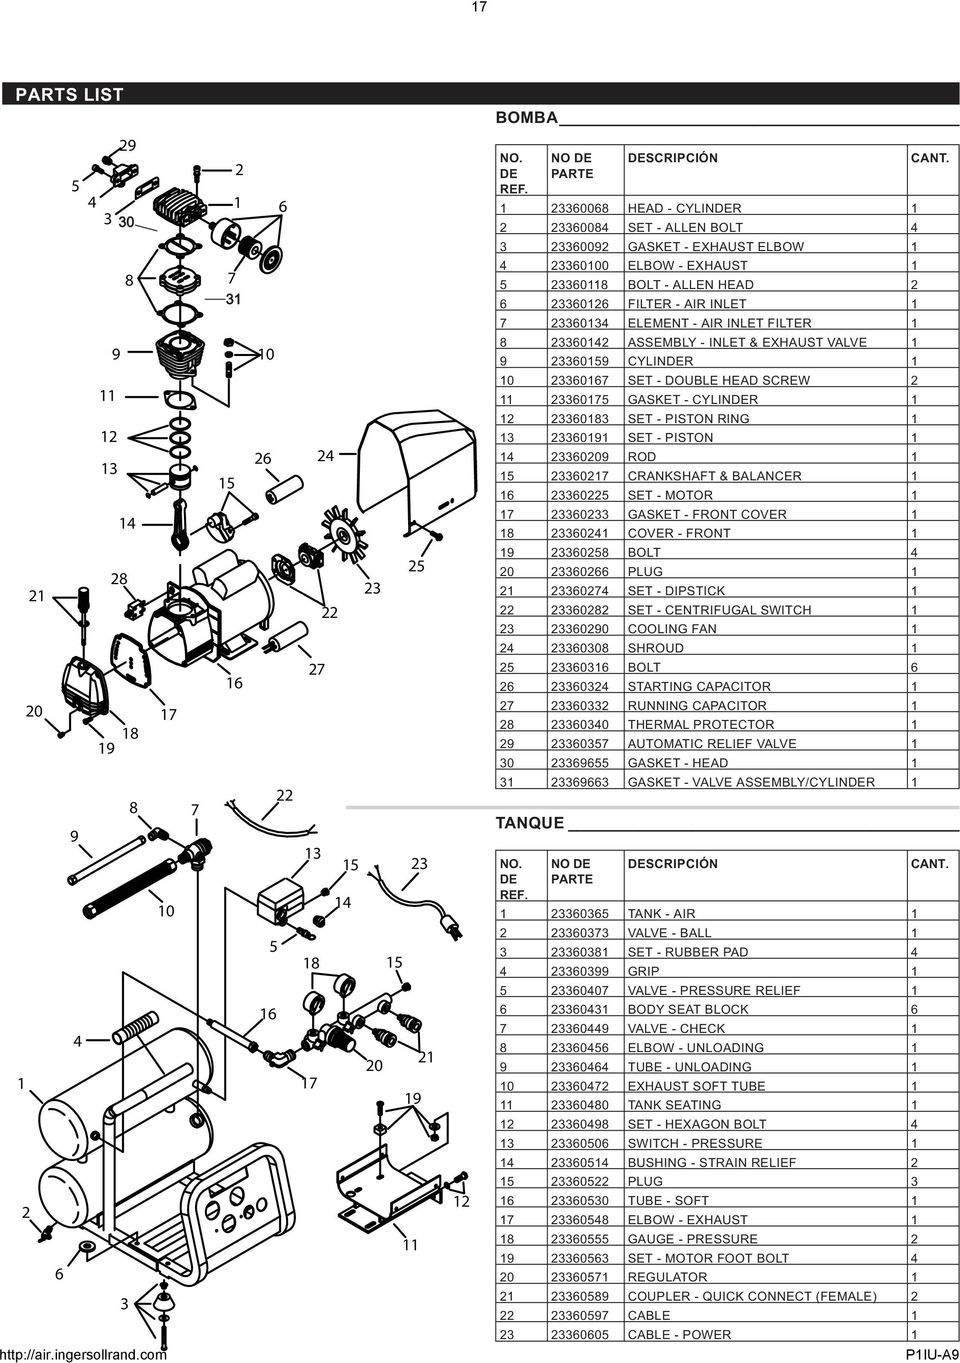 1 9 10 8 23360142 ASSEMBLY - INLET & EXHAUST VALVE 1 9 23360159 CYLINDER 1 11 10 23360167 SET - DOUBLE HEAD SCREW 2 11 23360175 GASKET - CYLINDER 1 12 13 15 26 24 12 23360183 SET - PISTON RING 1 13